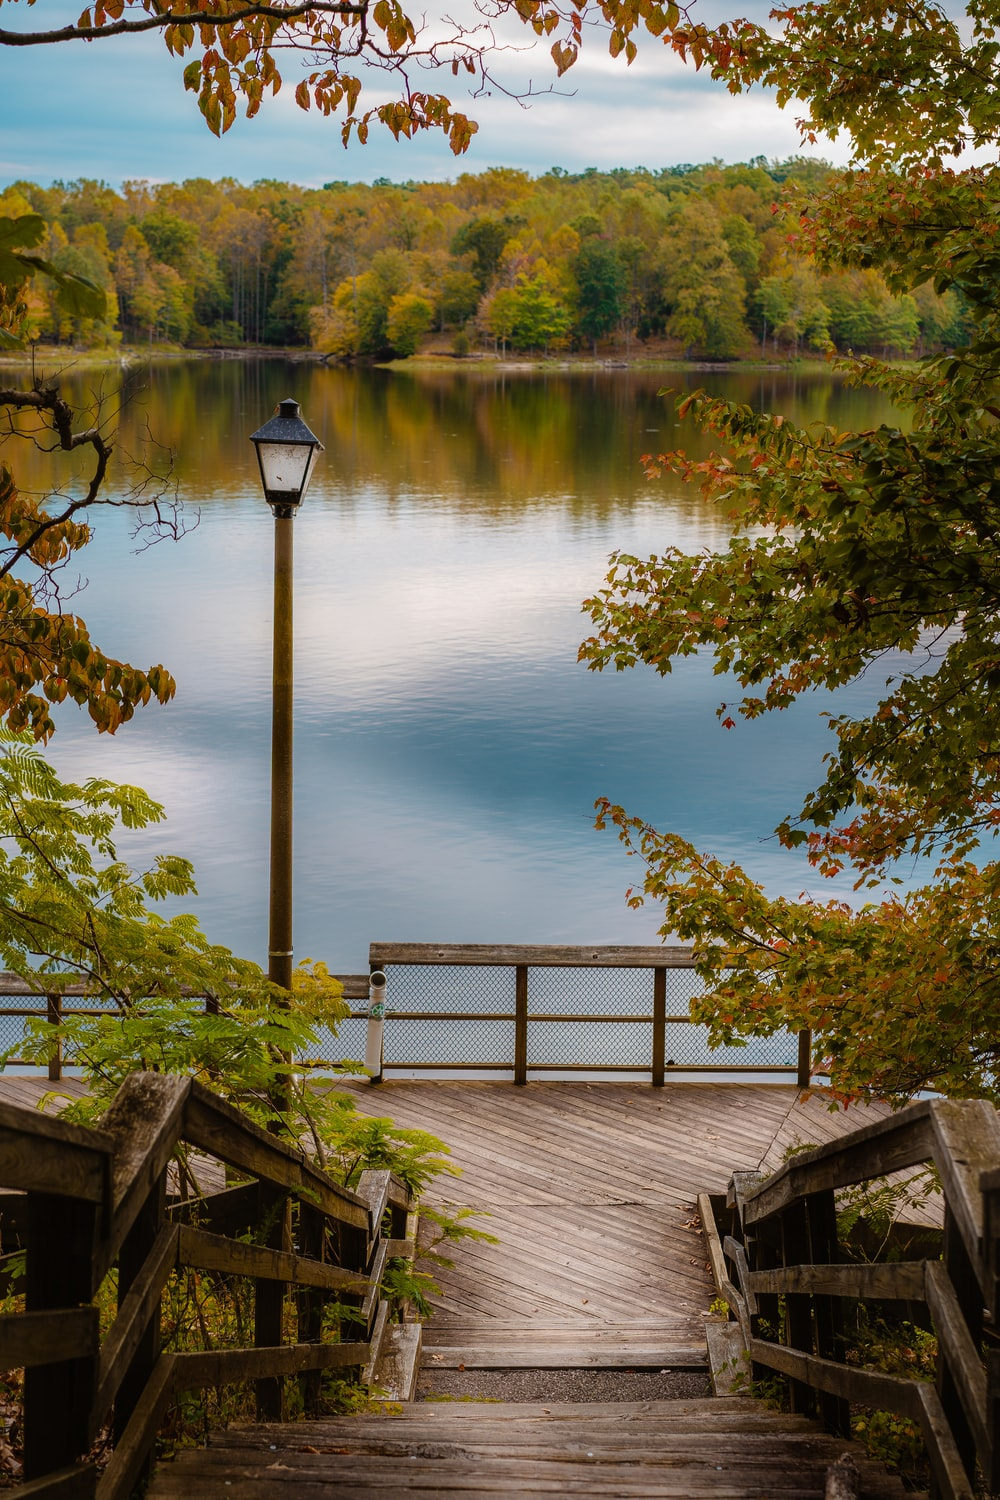 lamp post and wooden deck beside body of water